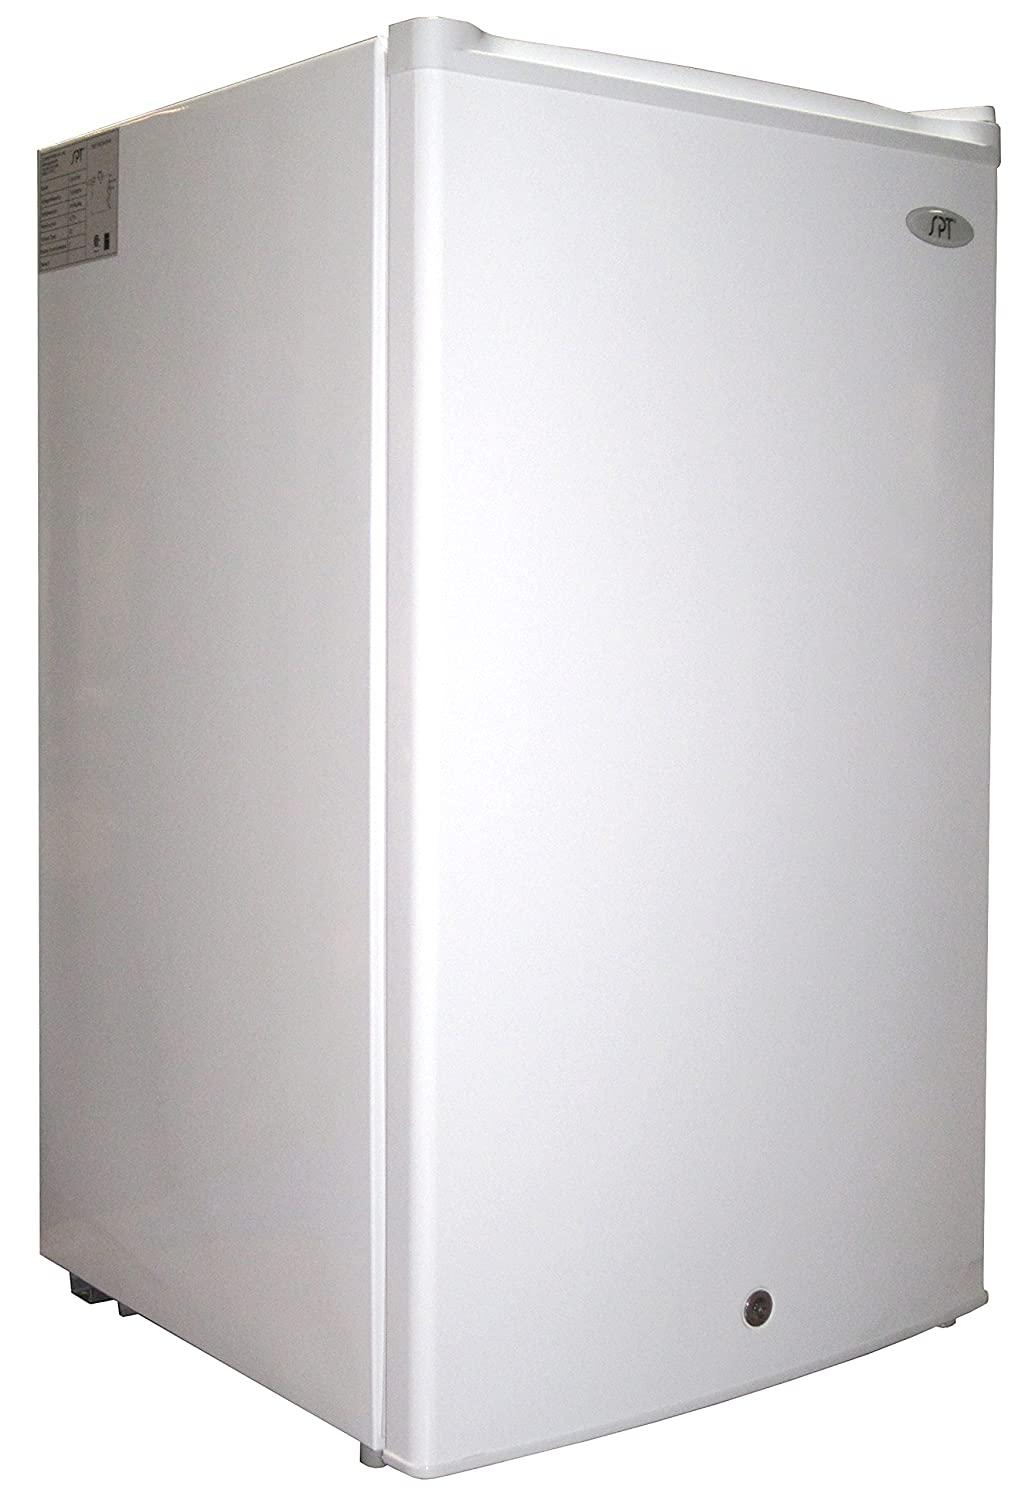 ENERGY STAR SPT UF-304W 3.0 cu.ft Upright Freezer in White